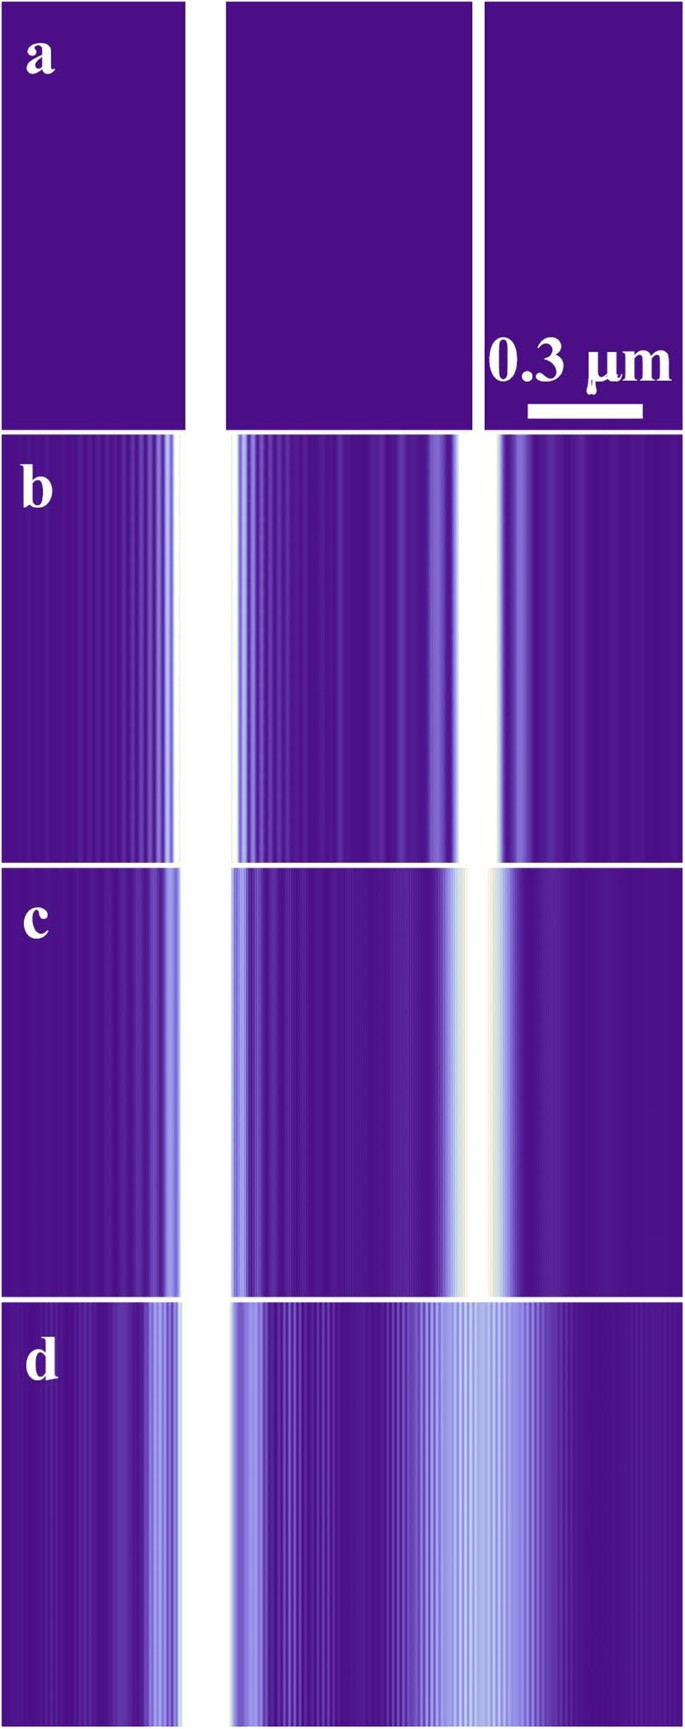 Interference experiment with asymmetric double slit by using